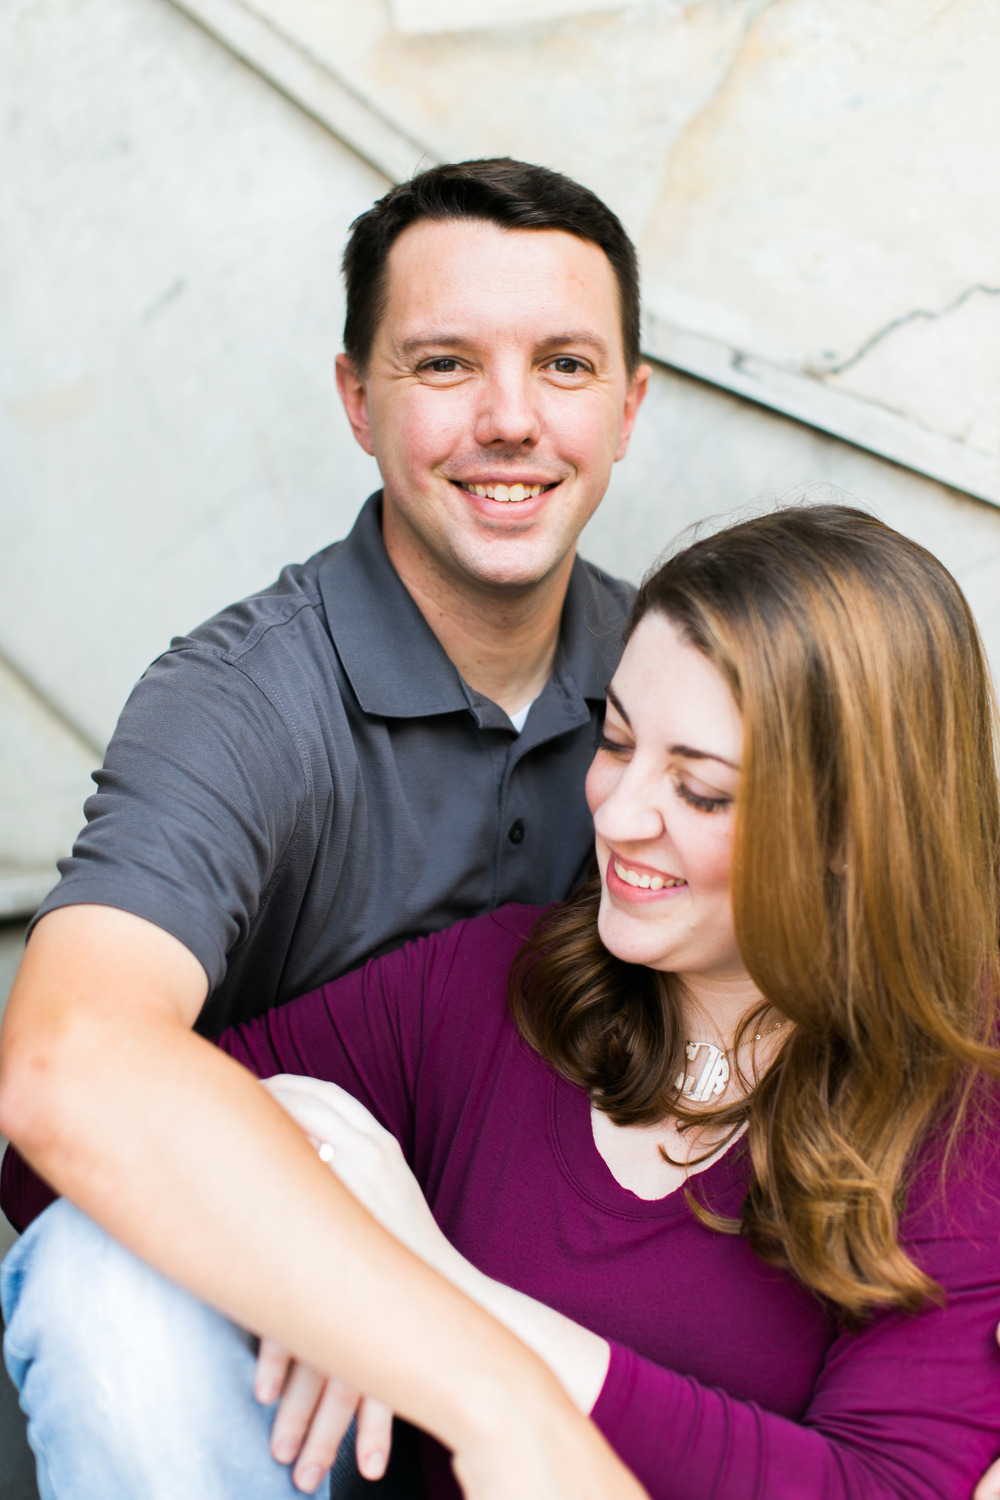 ally king - small town engagement session 3.jpg